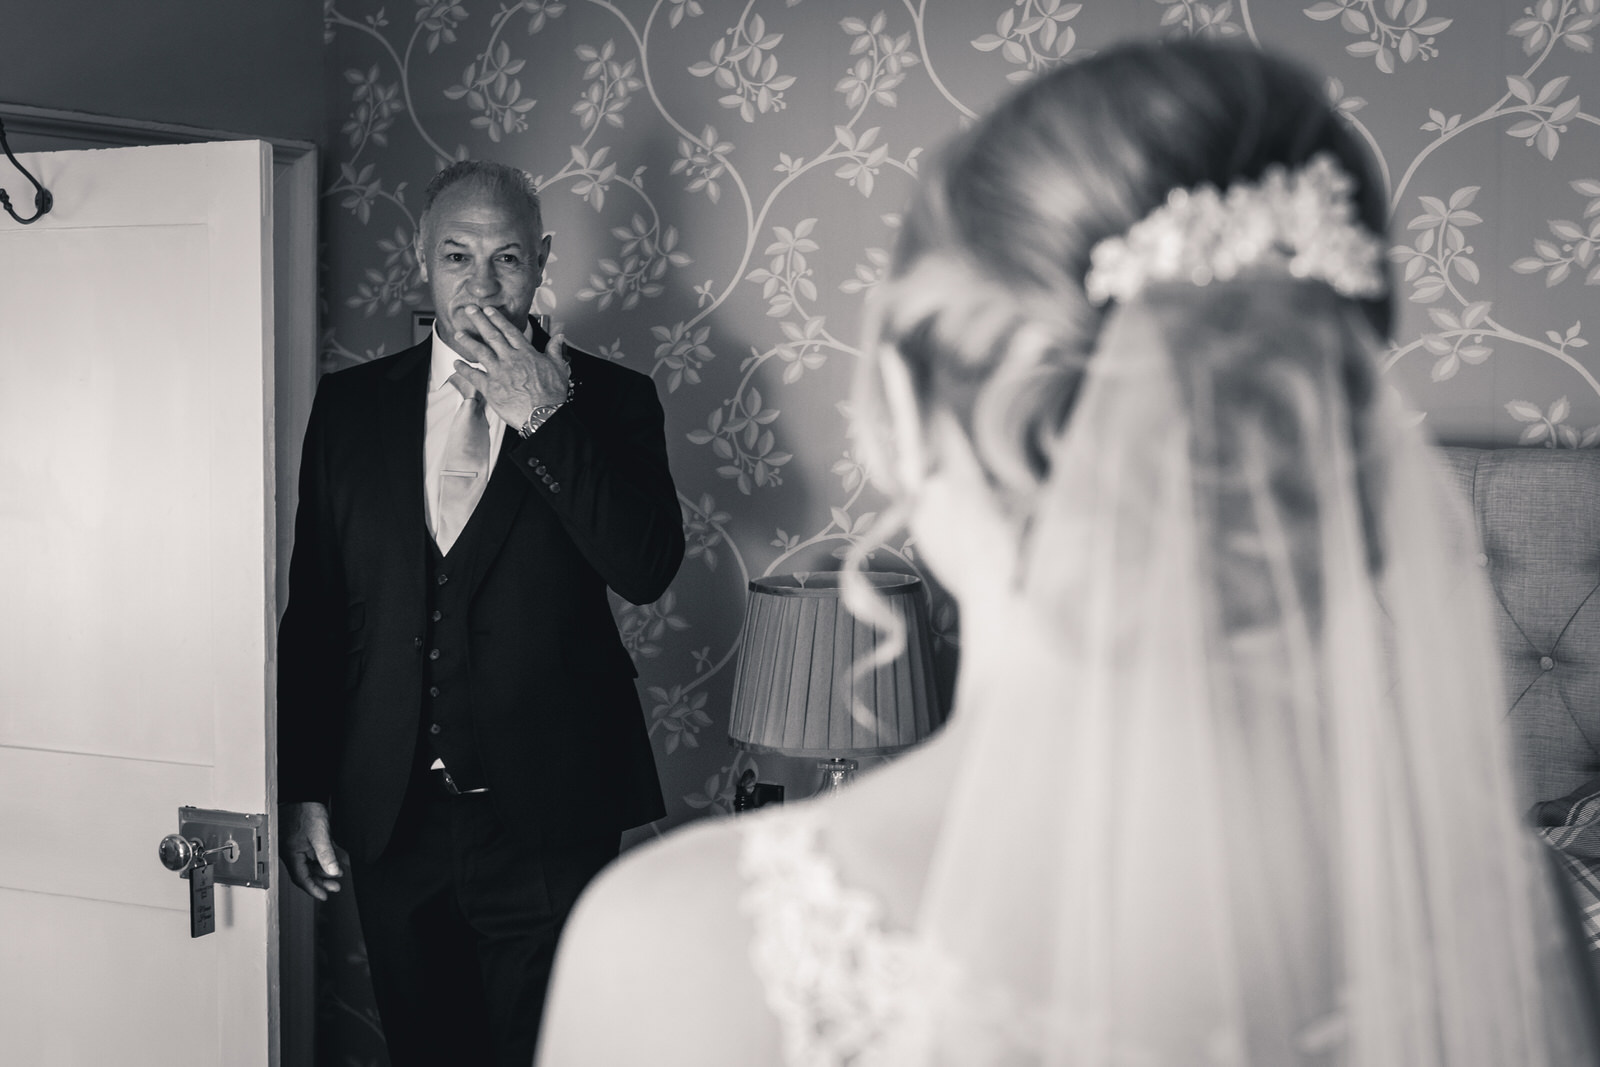 leeds-yorkshire-wedding-photographer-candid-emothion 11.jpg